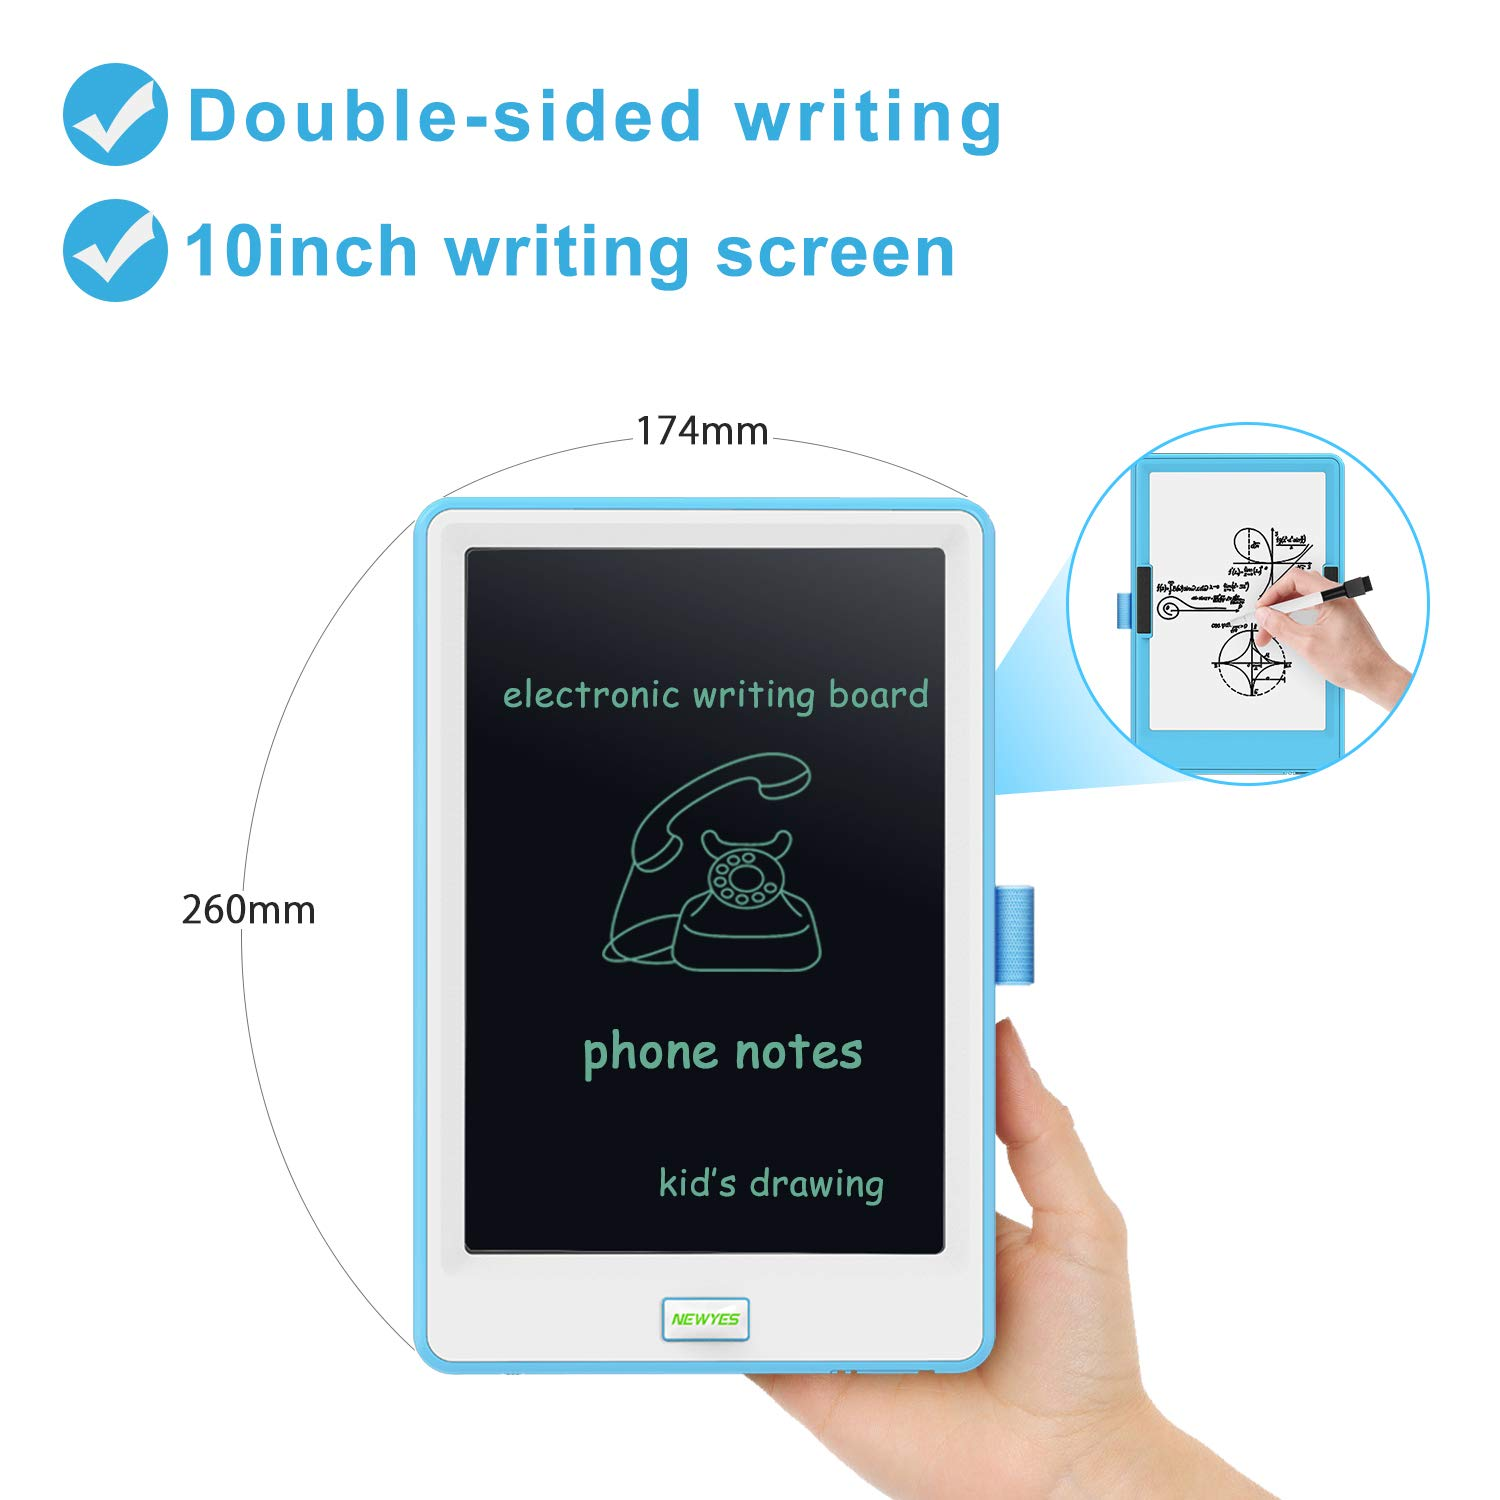 10 Inch LCD Writing Tablet Blue School and Office with Lock Erase Button WOBEECO Electronic Drawing Tablet Kids Tablets Doodle Board Writing Pad for Kids and Adults at Home